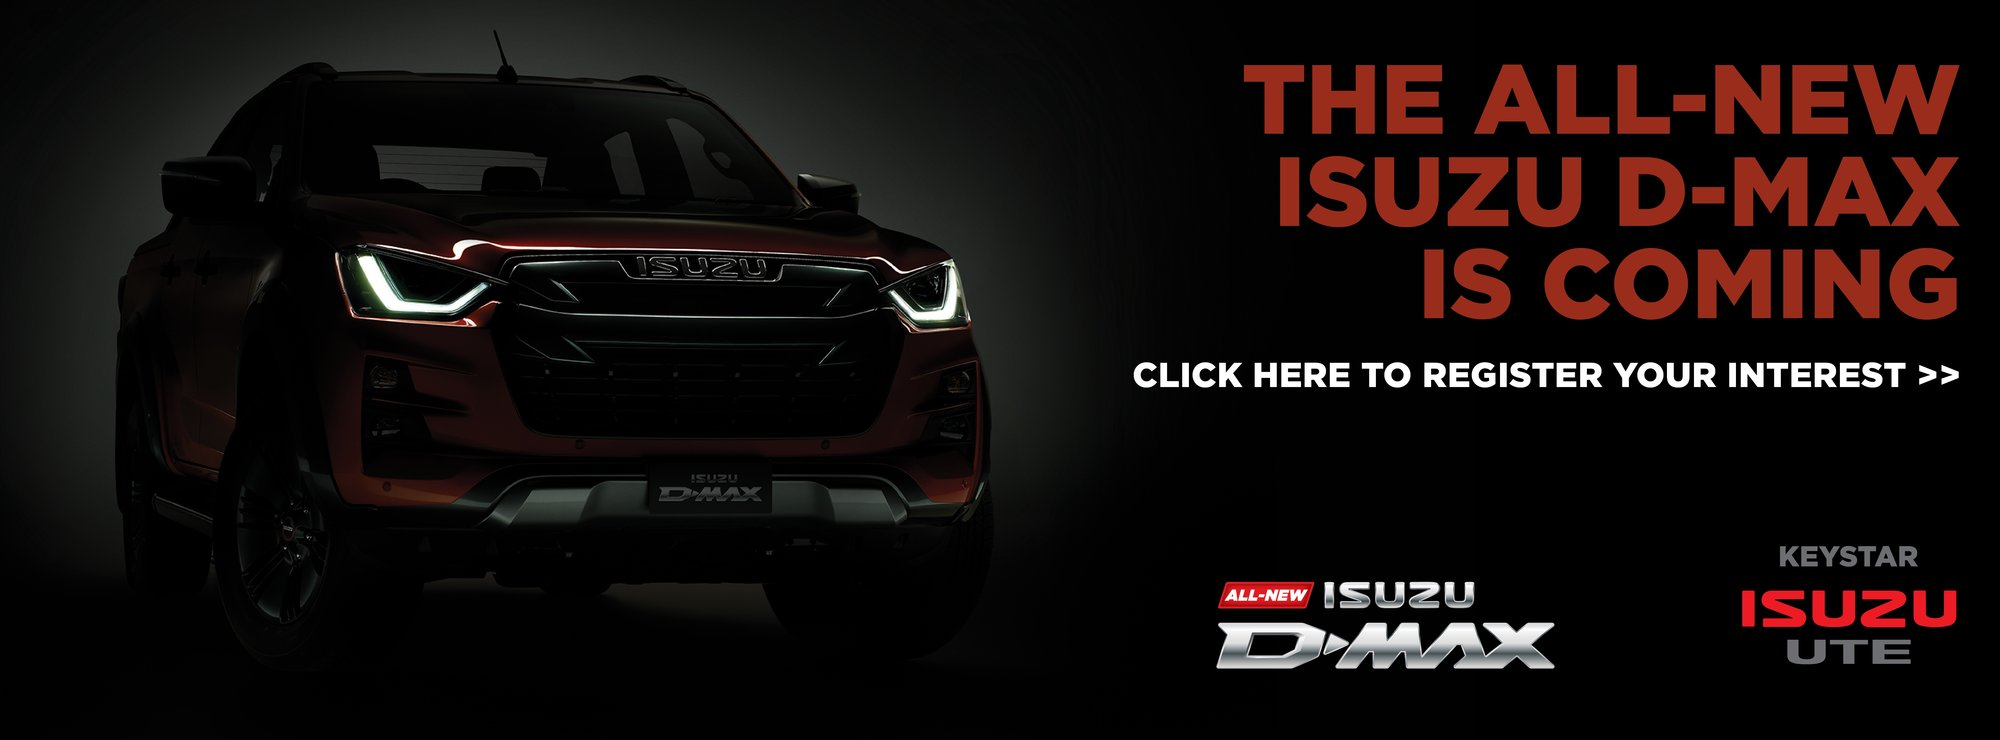 All-New D-MAX is Coming!